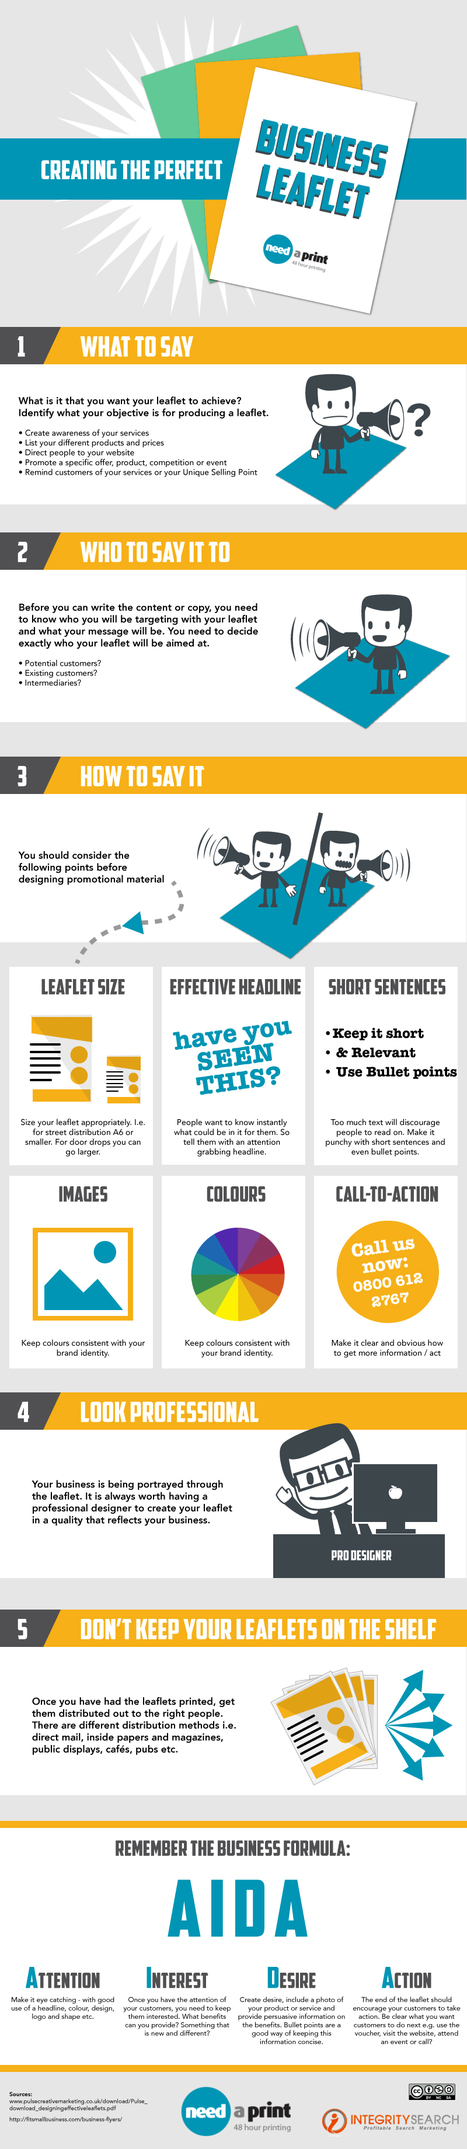 Creating The Perfect Business Leaflet | digital marketing strategy | Scoop.it